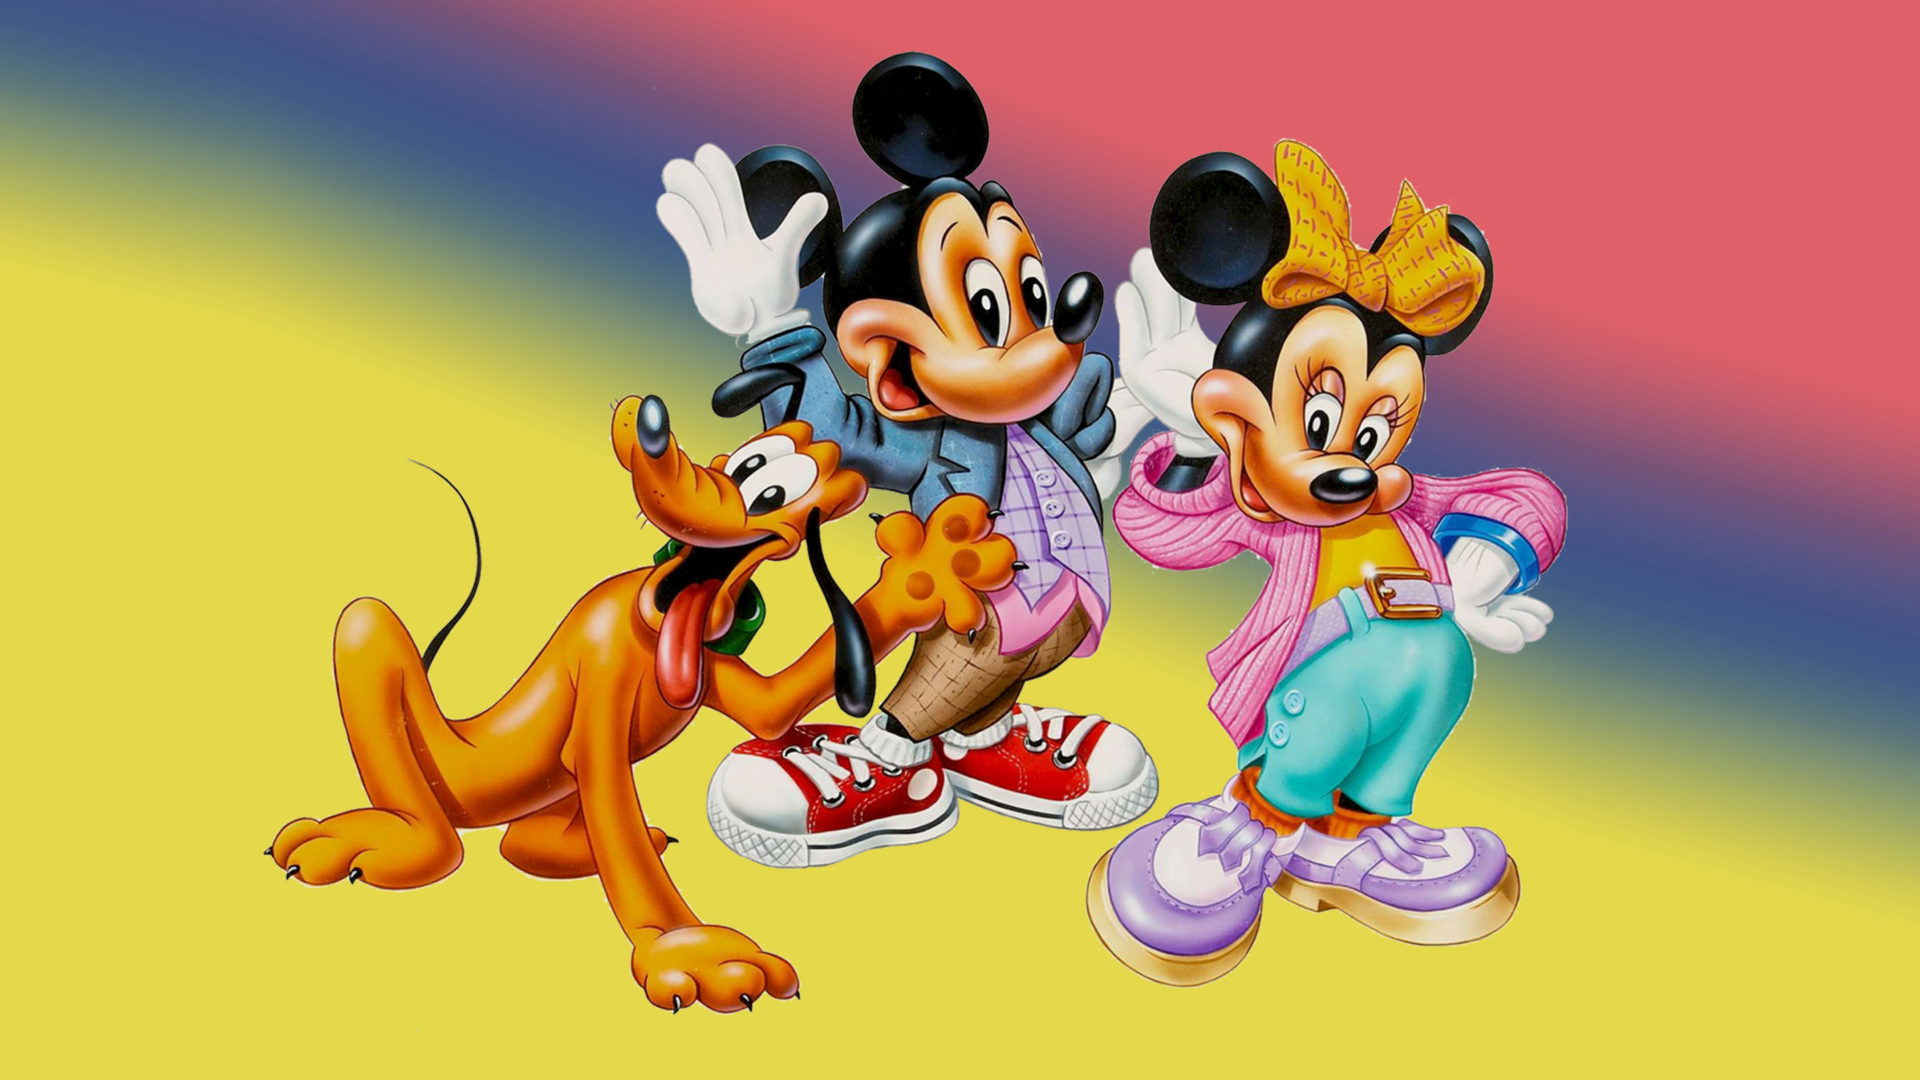 walt disney poster mickey mouse and friends wallpaper hd 1920x1200 wallpapers13 com